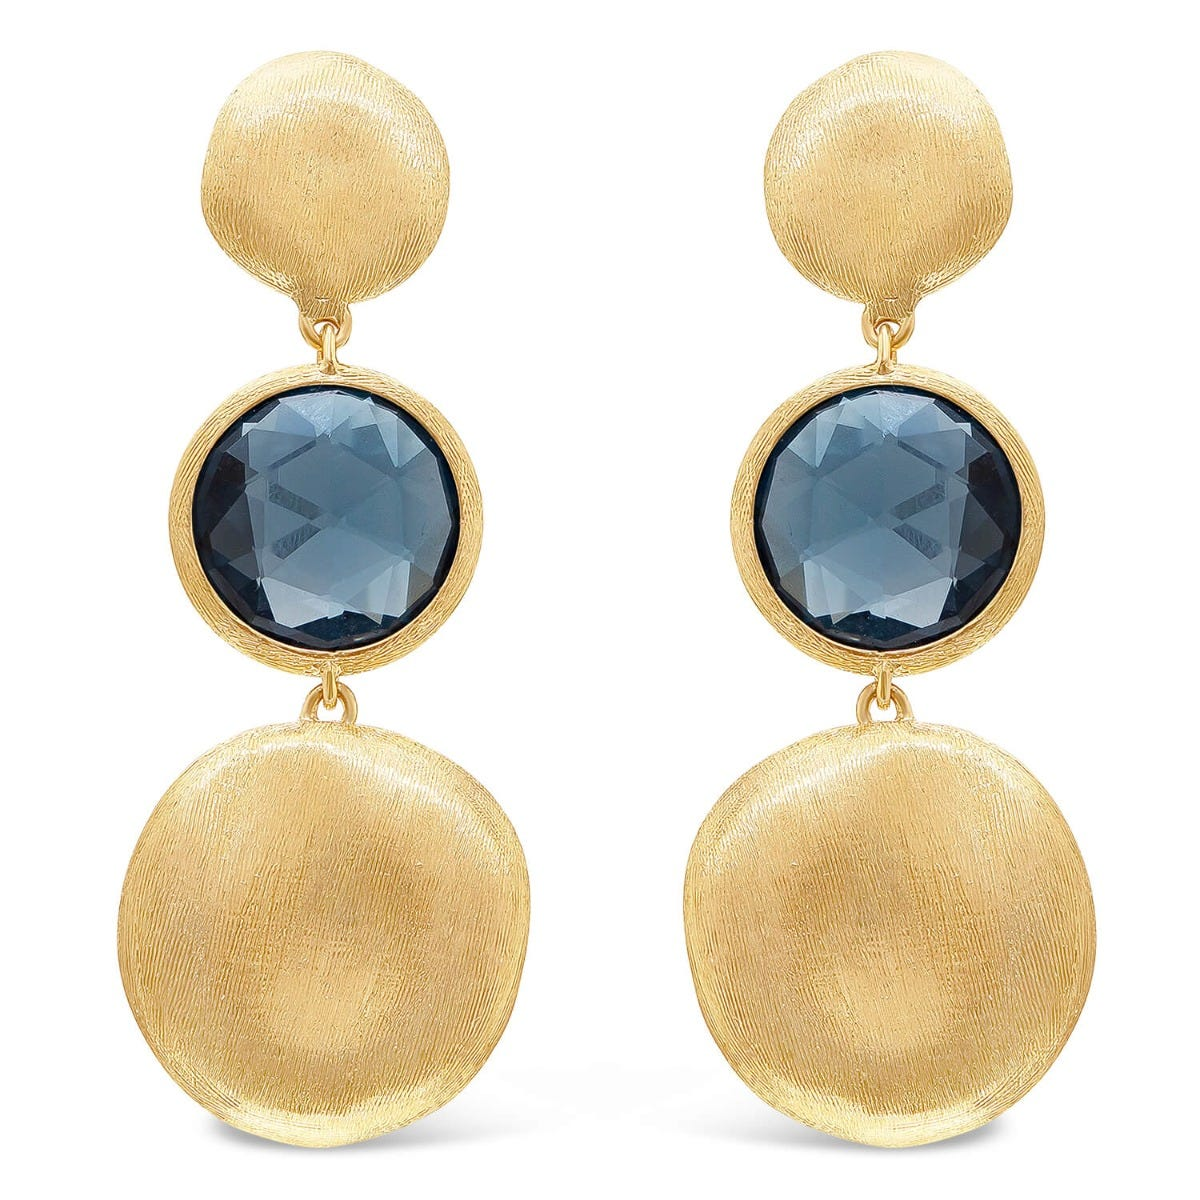 Marco Bicego Jaipur 18ct Yellow Gold Blue Topaz Drop Earrings